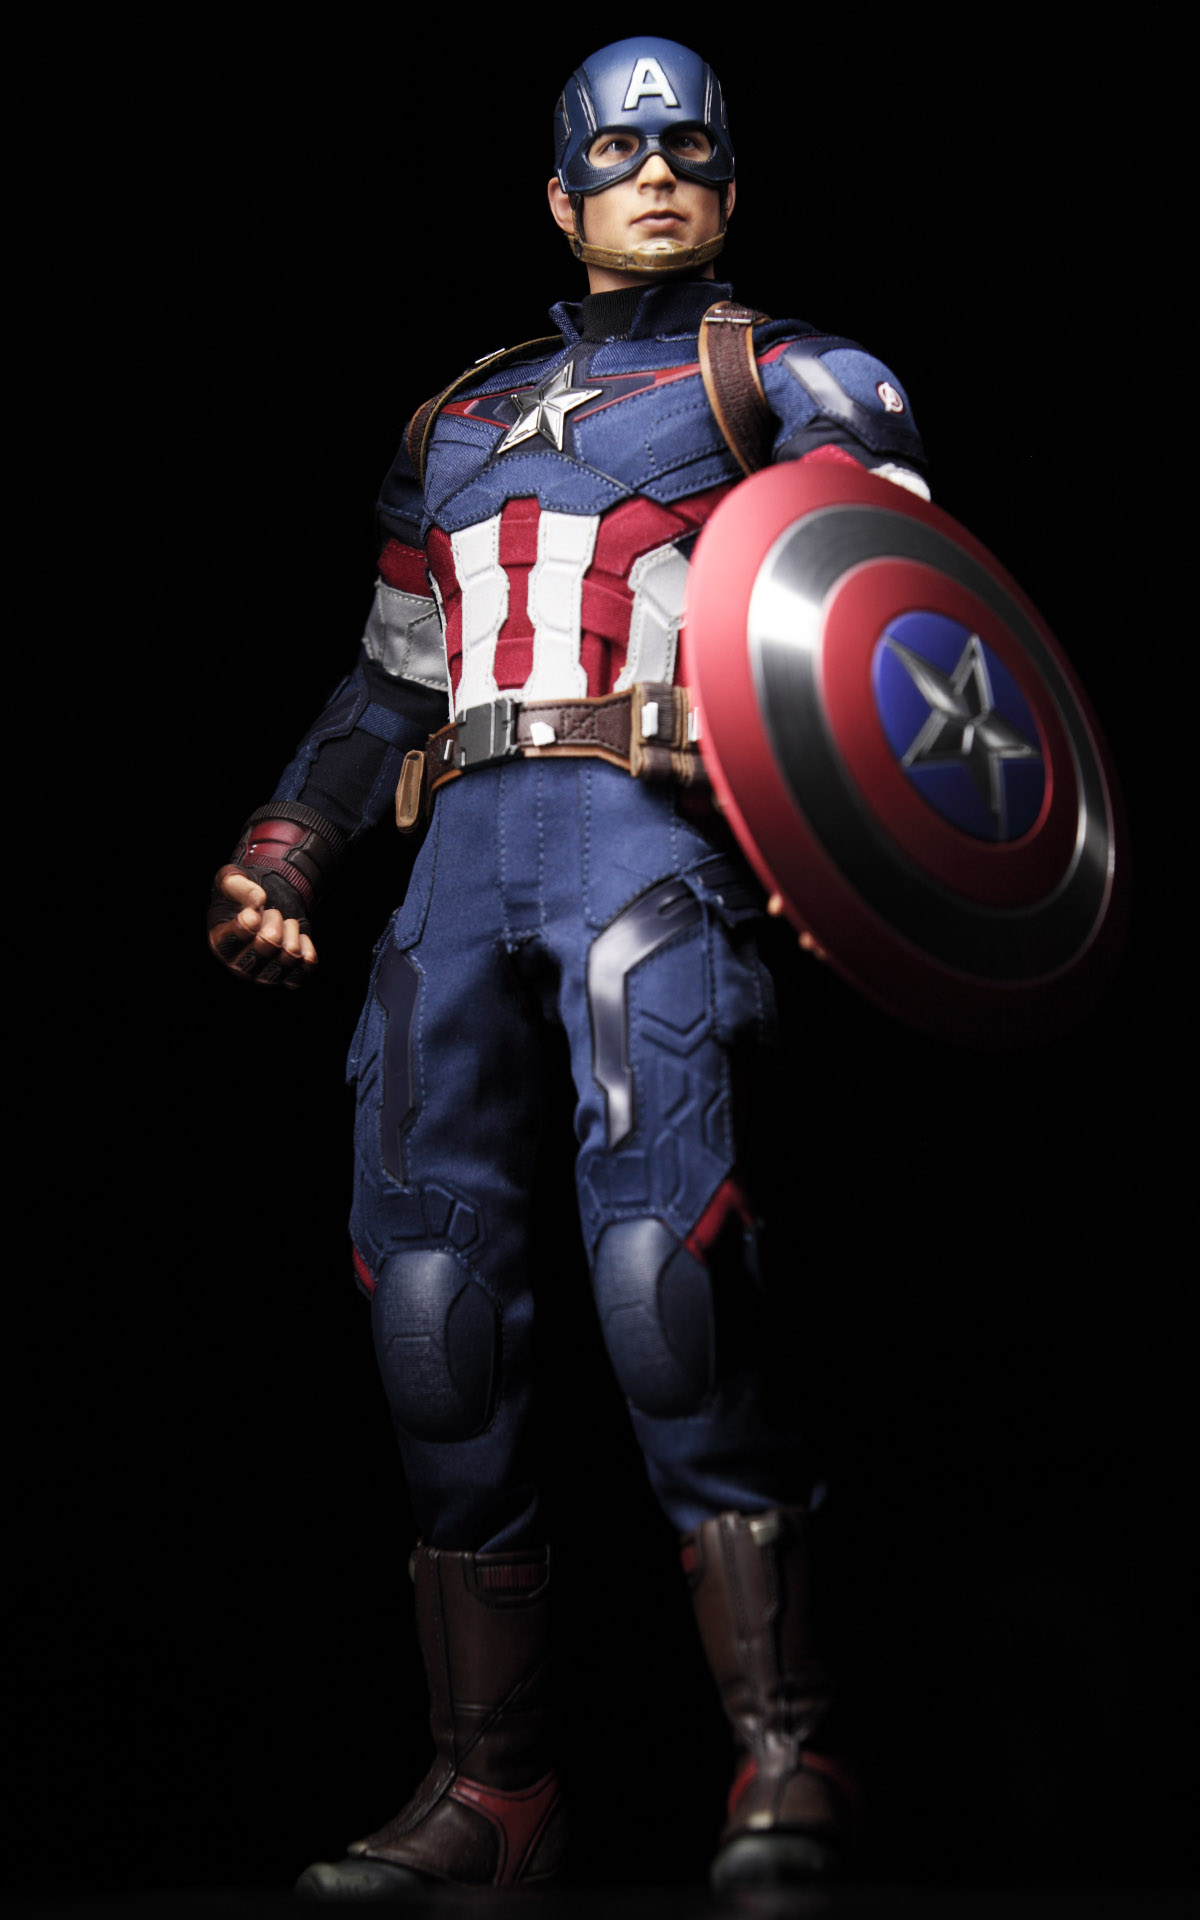 hottoys-avengers-age-of-ultron-Captain-America-picture01